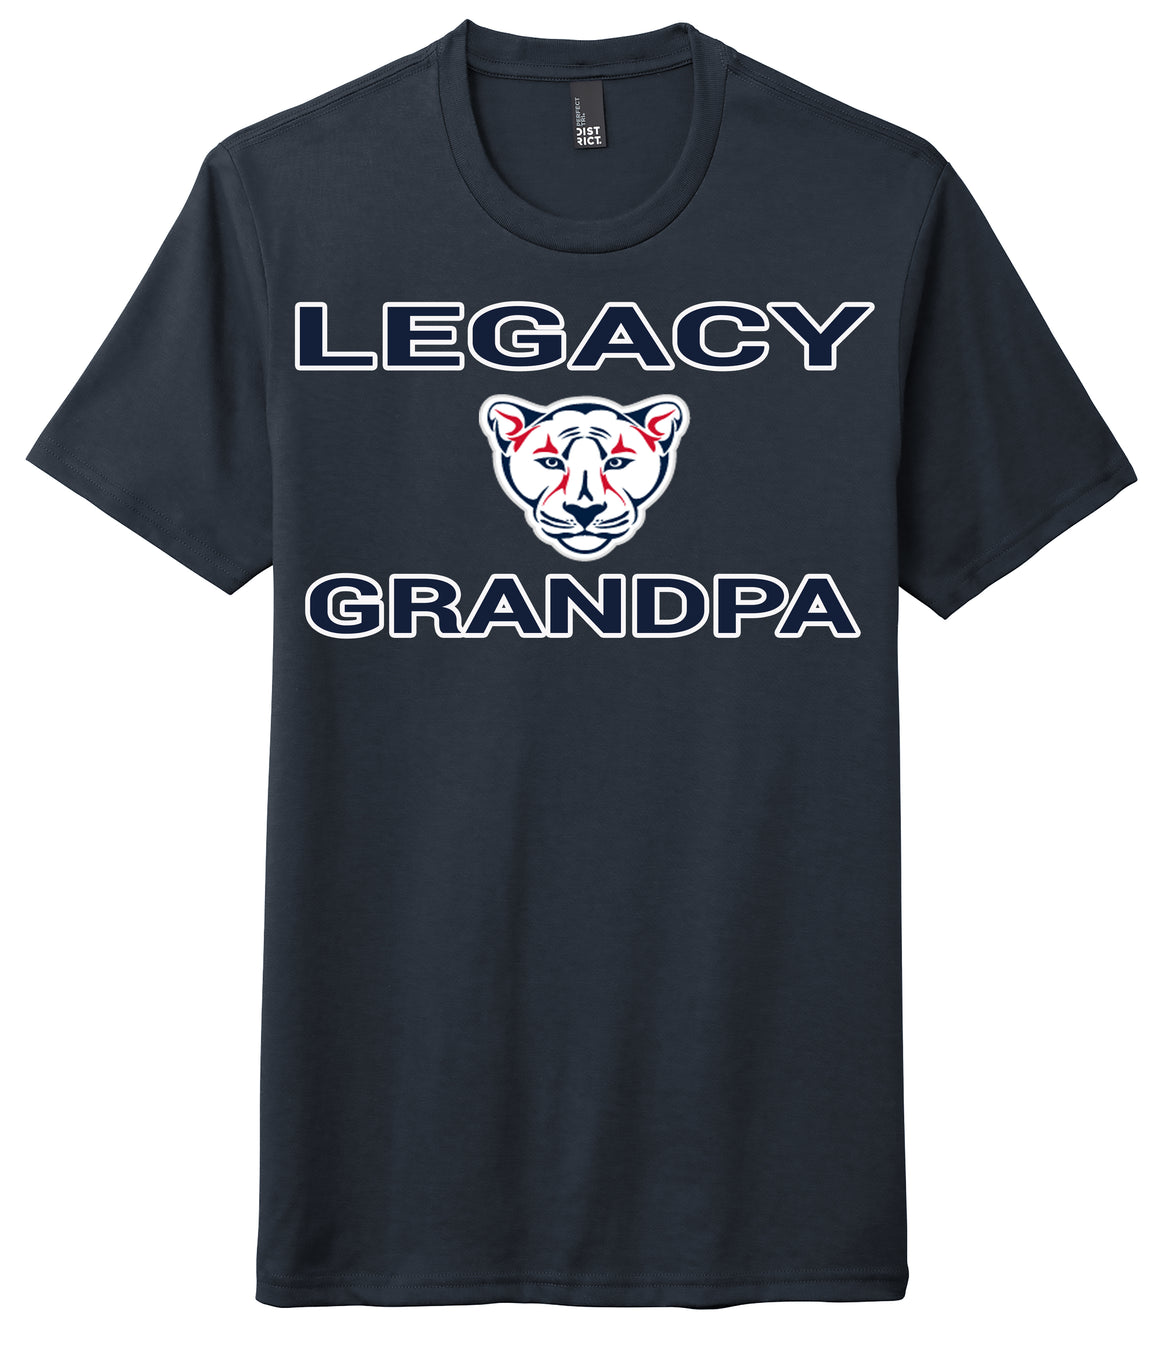 Legacy Traditional School Peoria - Grandpa Shirt